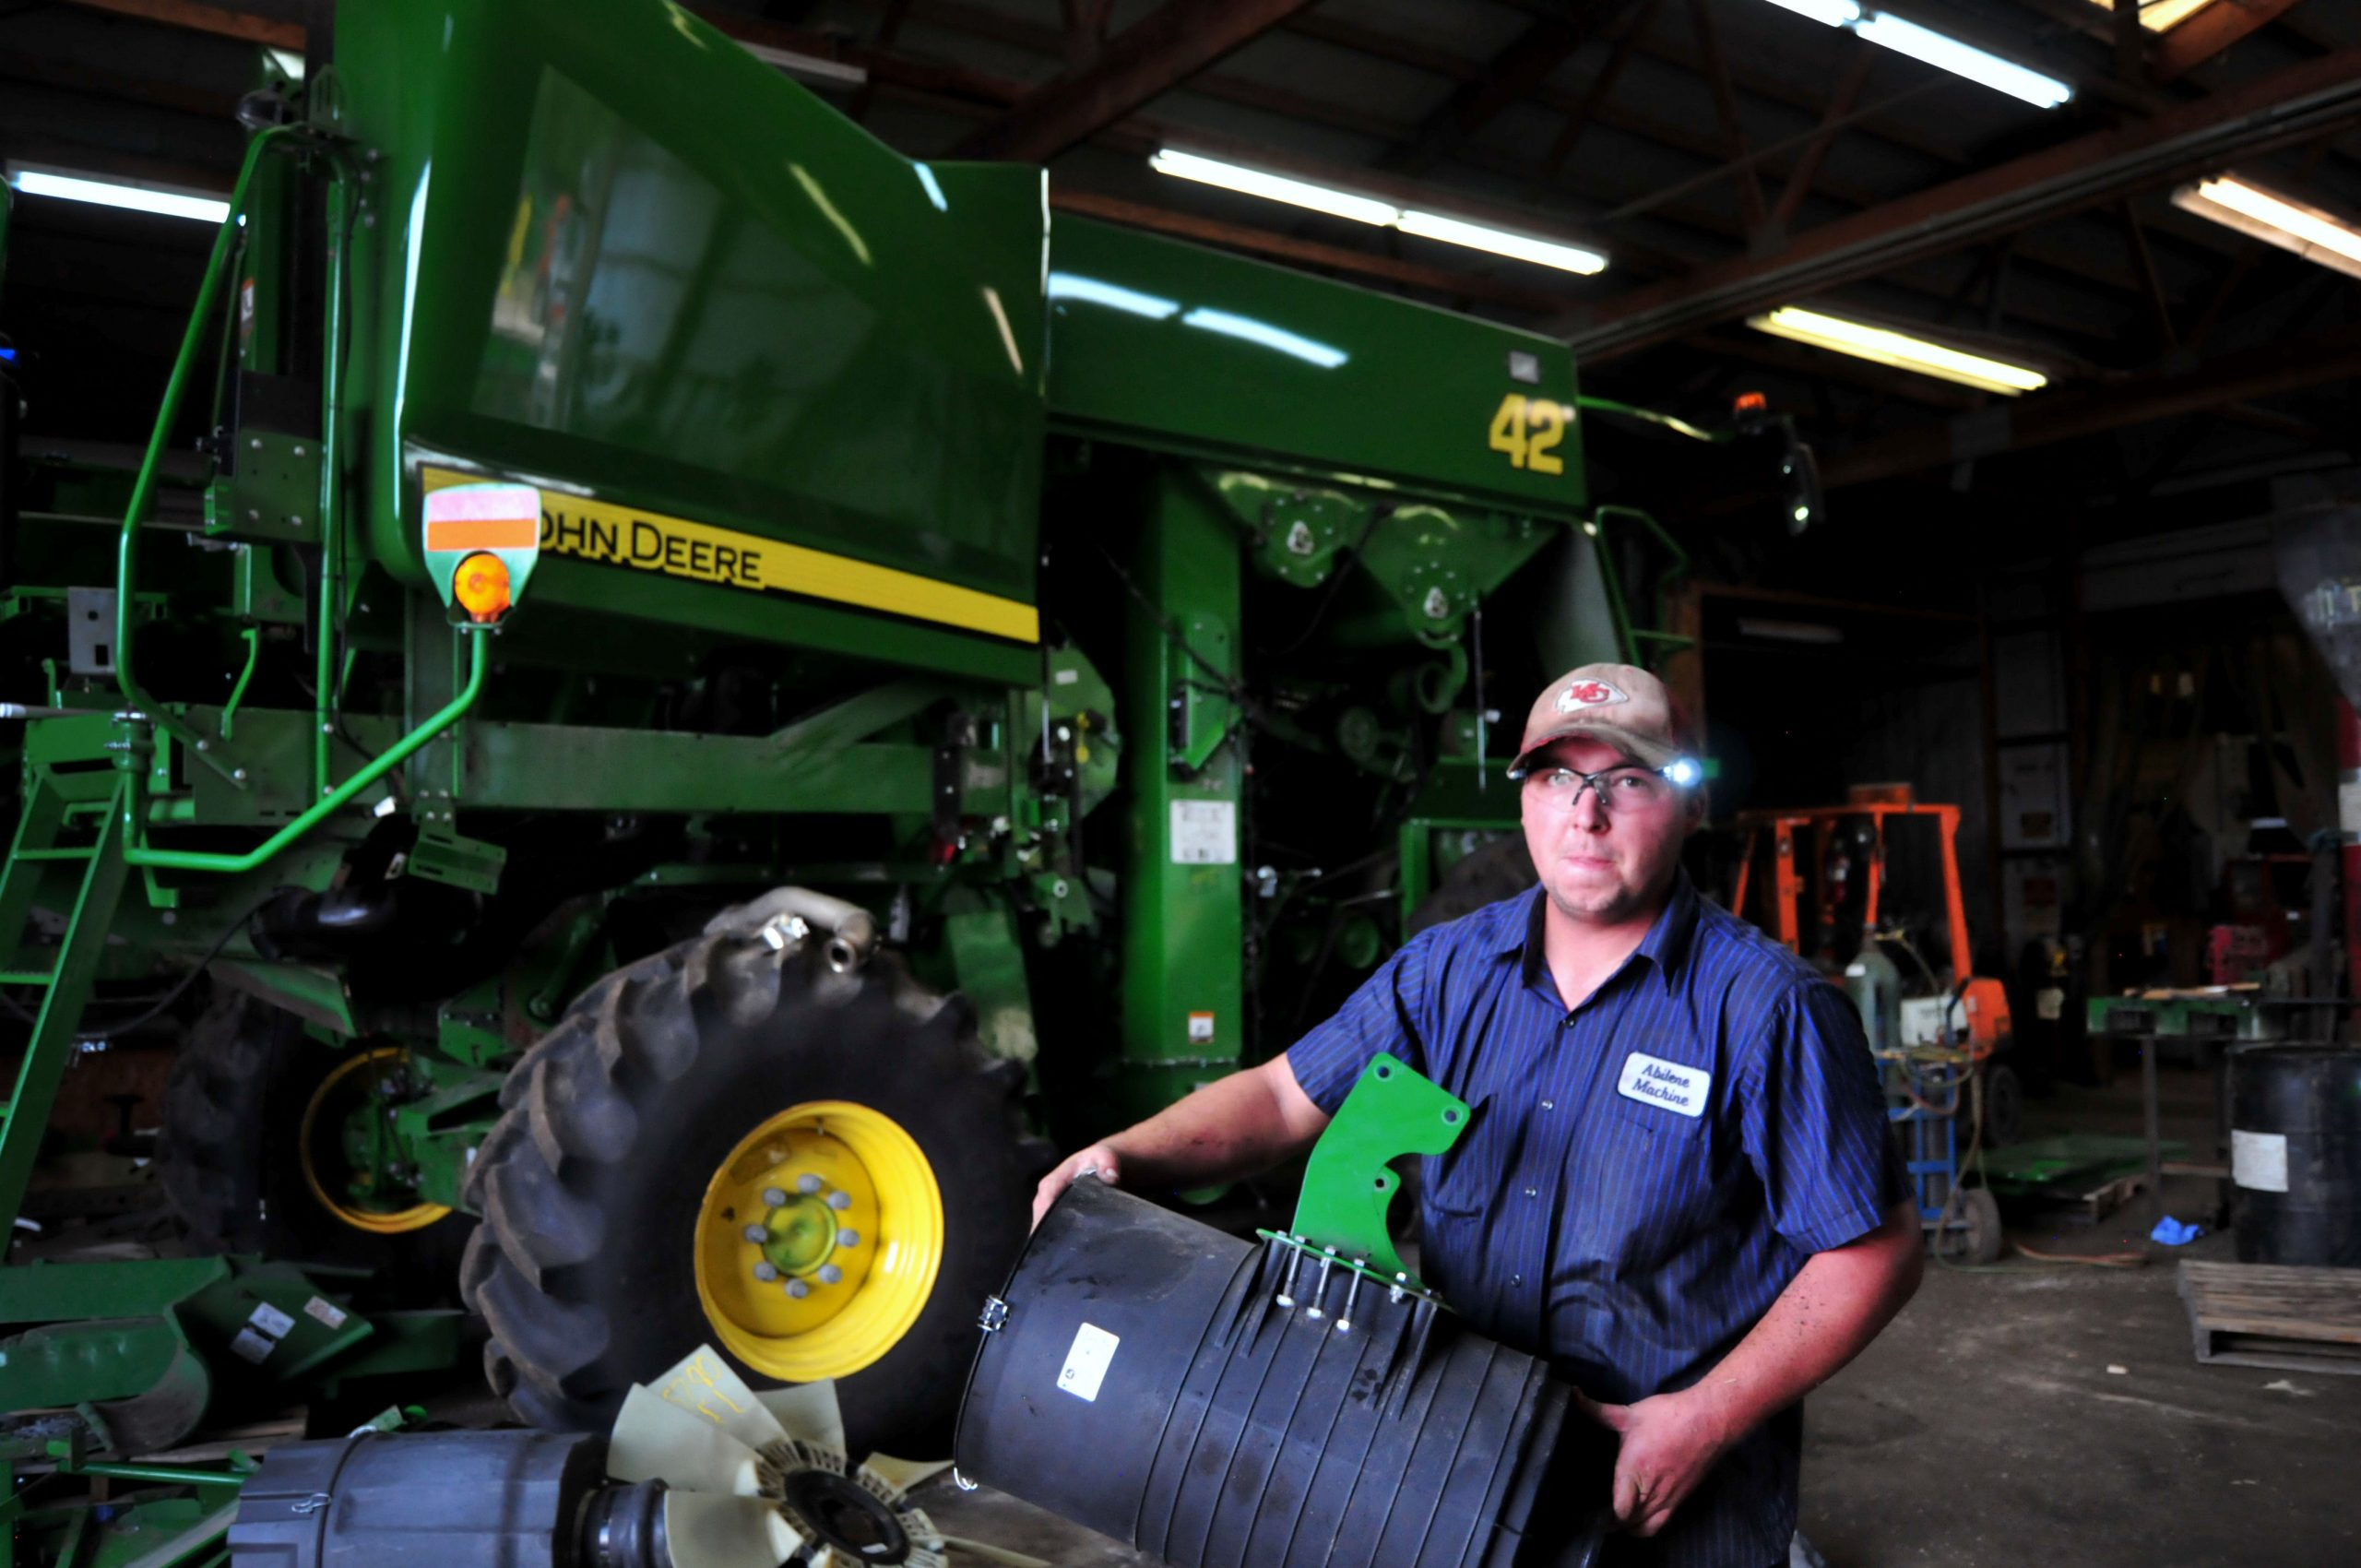 Alex Shewmon, Combine Parts Technician at Abilene Machine, takes good used parts from a damaged John Deere Combine at one of the shops at the company's facility near Solomon, Kansas, Sept. 2, 2020. Abilene Machine started in 1980 as an agricultural machinery salvage parts and equipment resale operation. (Photo by Torey Griffith, Digital Marketing Specialist at Abilene Machine)